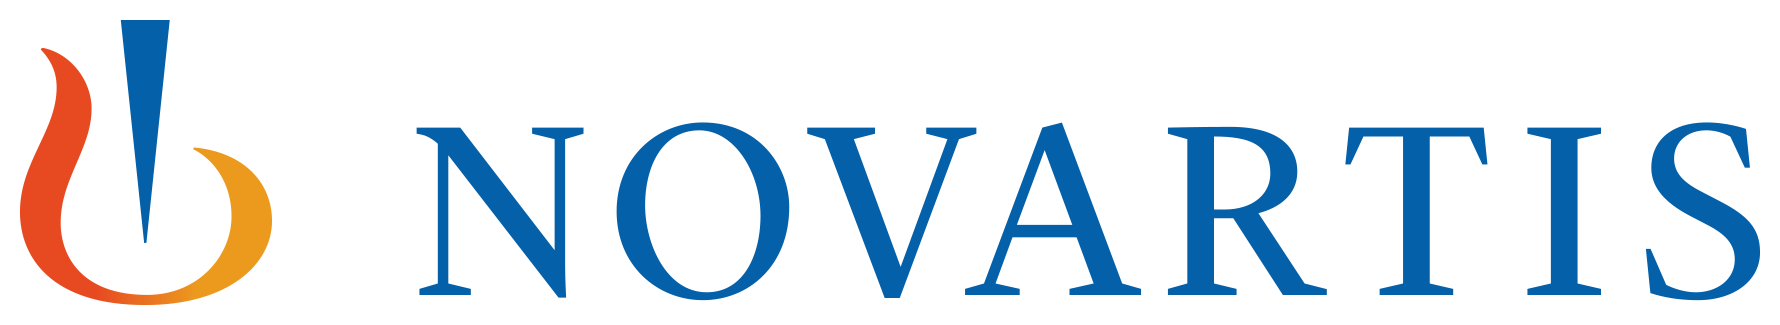 [Translate to English:] Novartis Logo